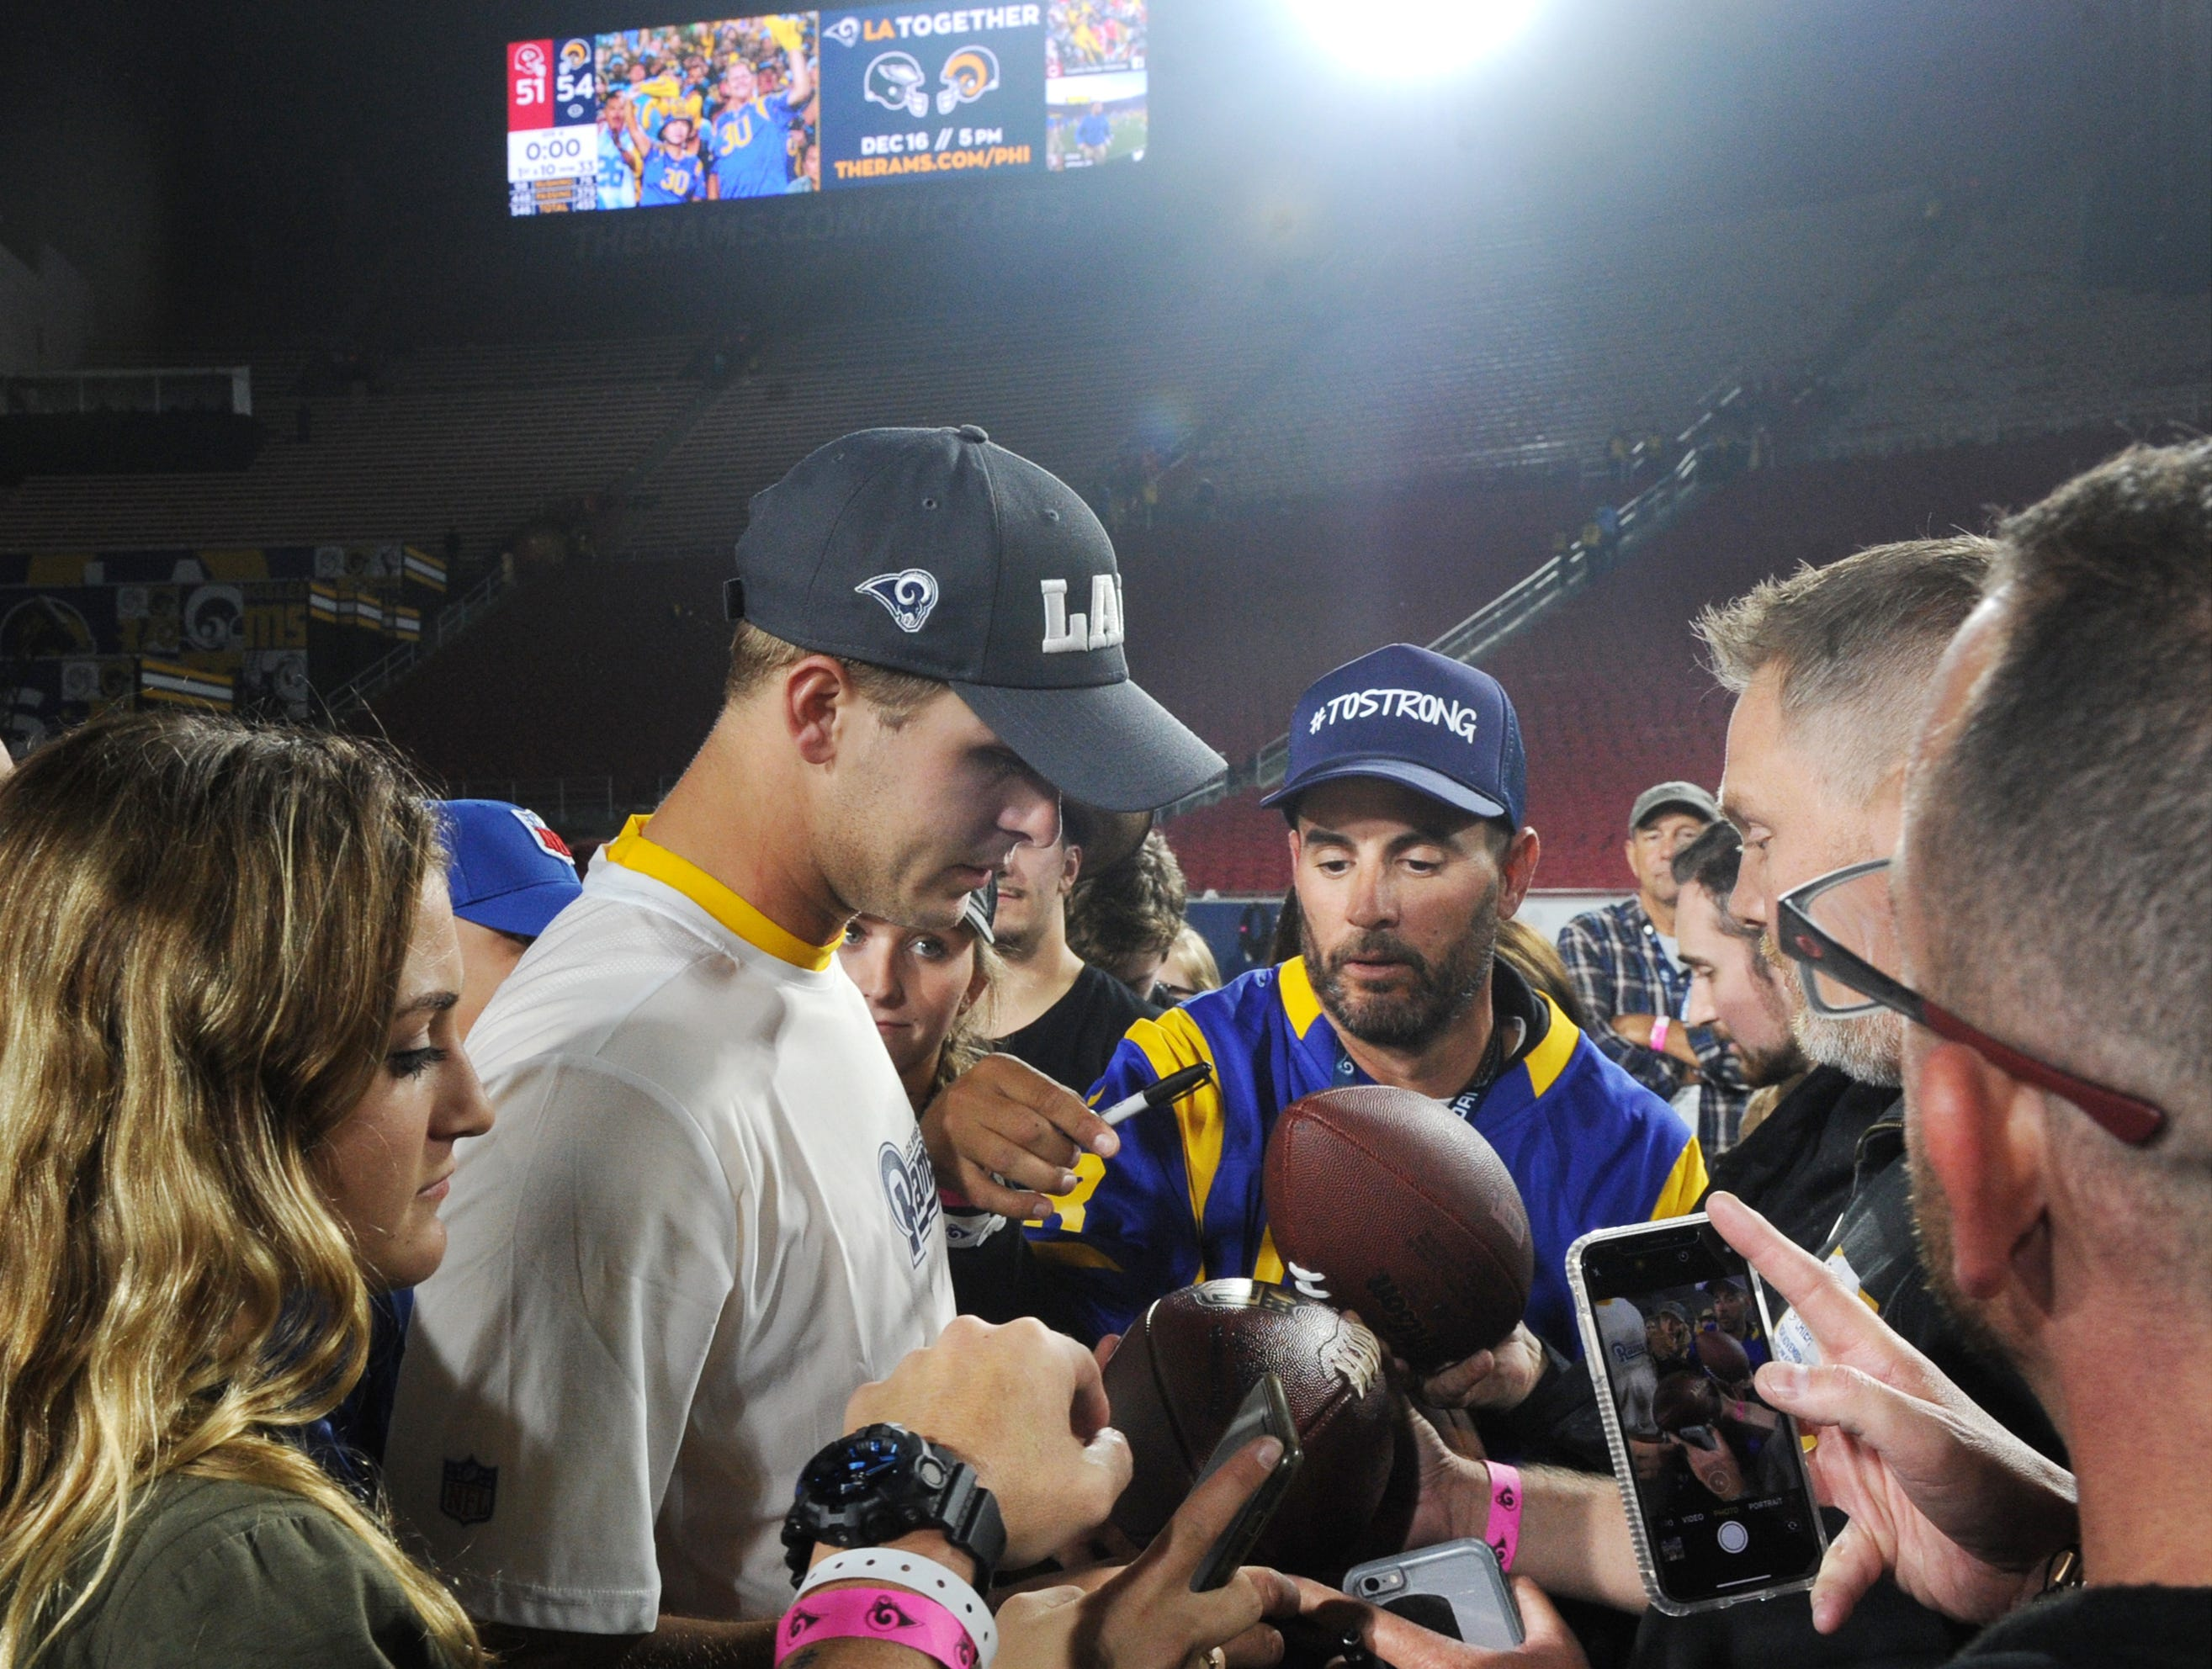 Quarterback Jared Goff signs autographs for first responders after the Rams' 54-51 win over the Chiefs on Monday night.